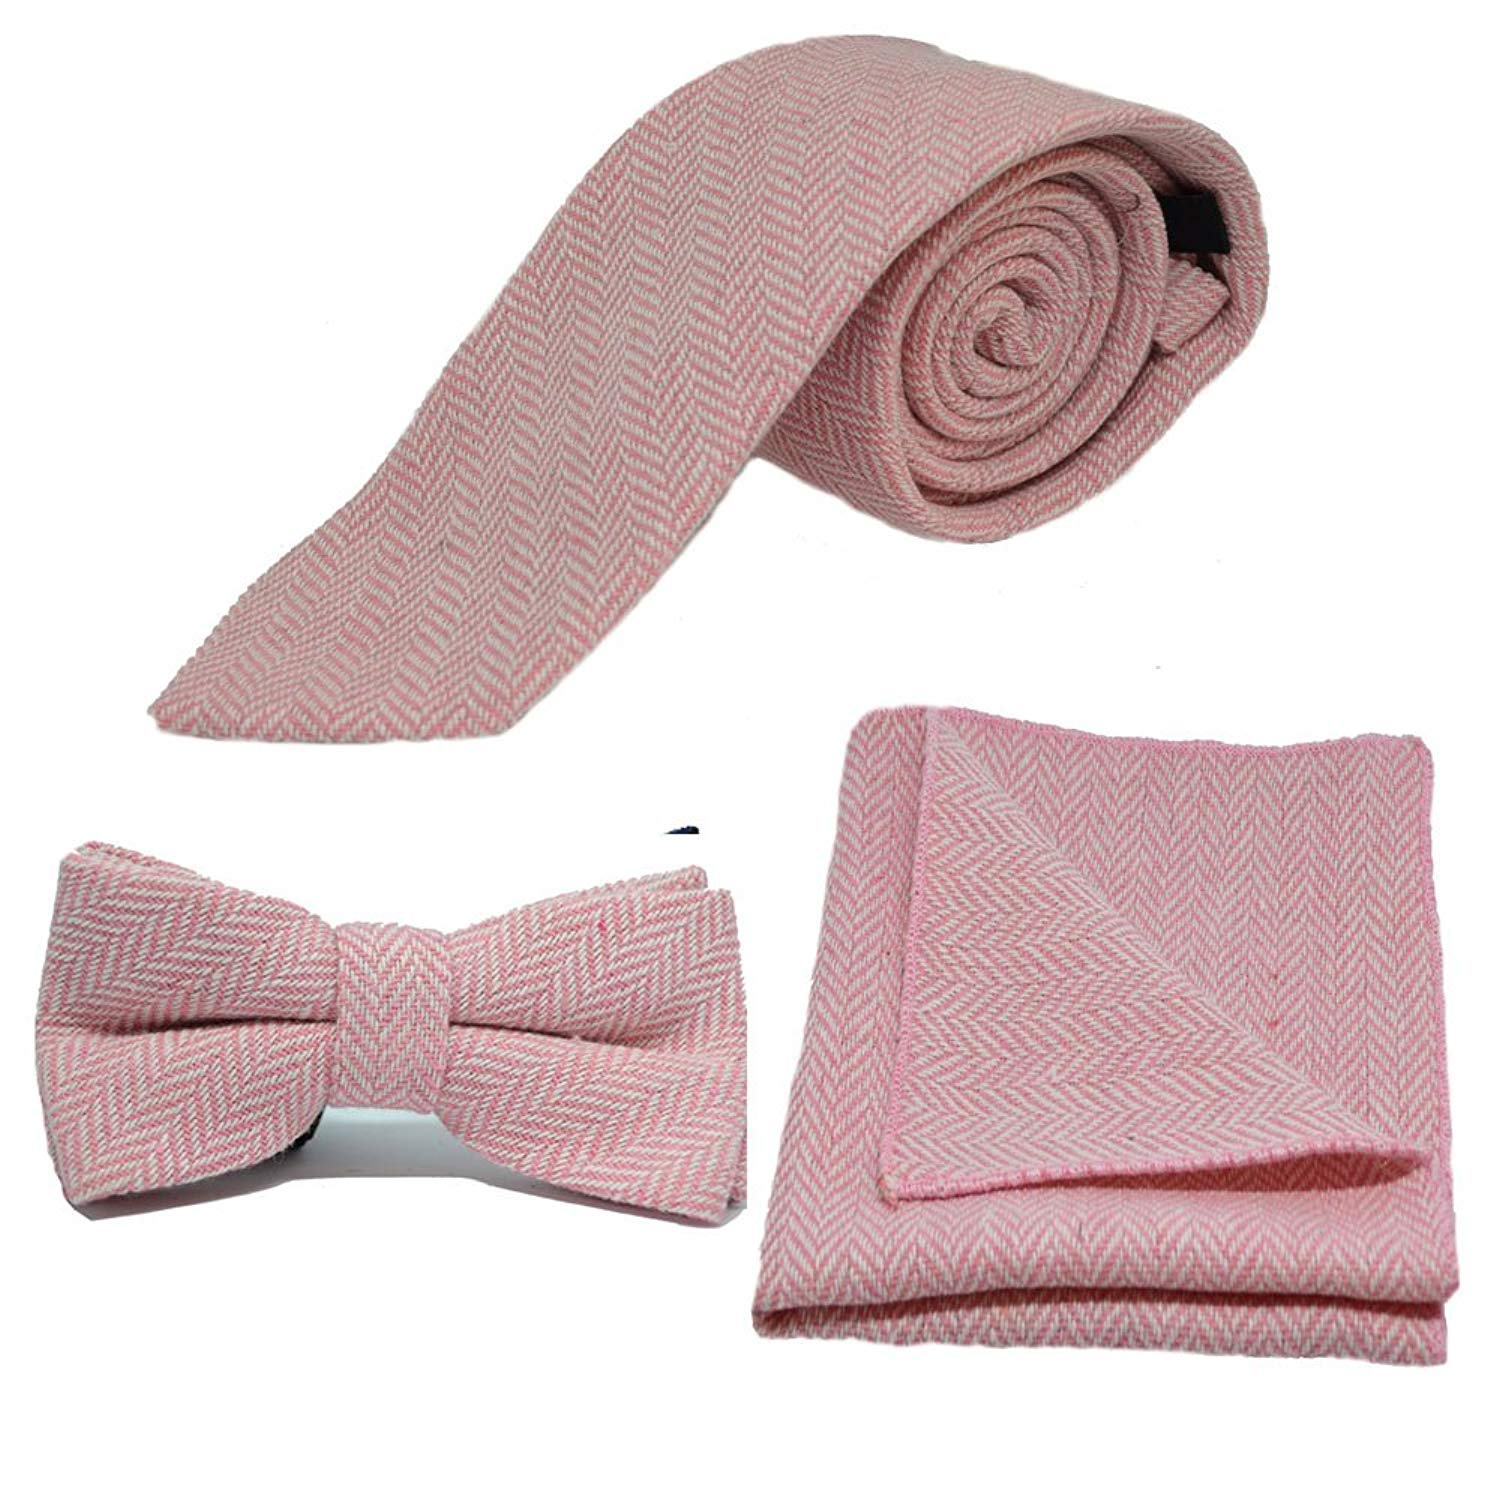 91db9d9c9153 Get Quotations · Candy Pink & Cream Herringbone Necktie, Bow Tie & Pocket  Square Set